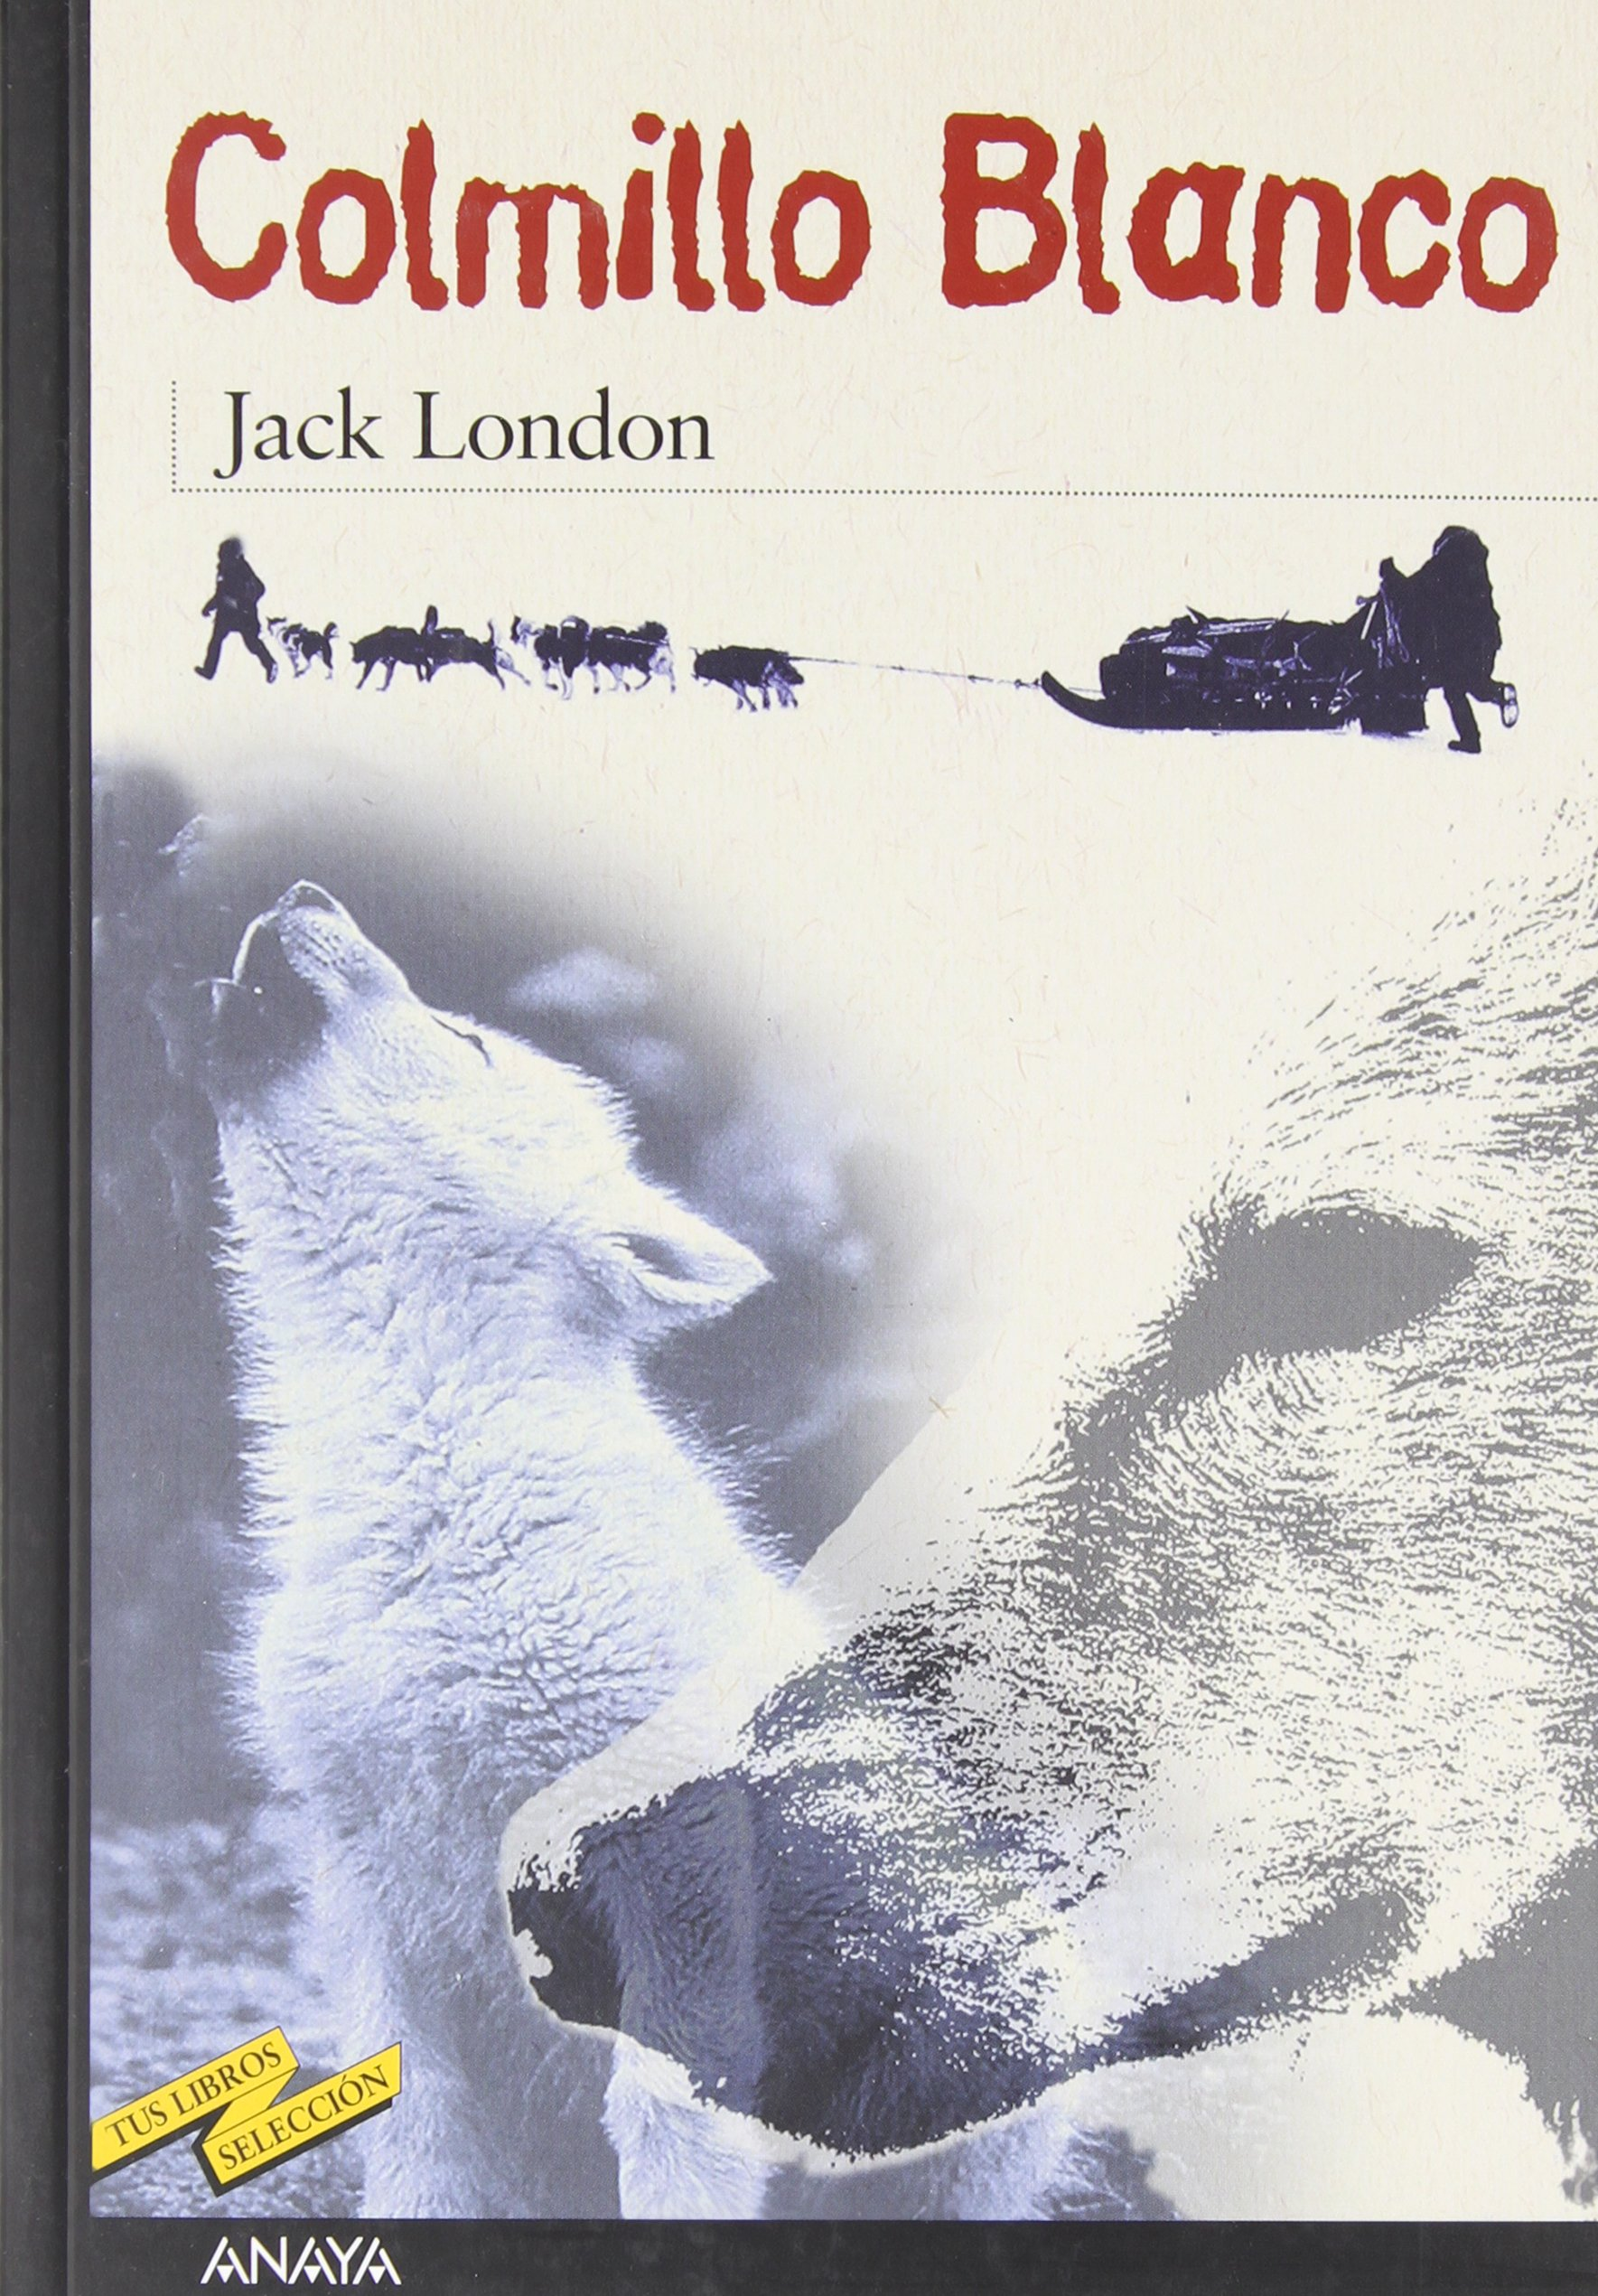 Colmillo Blanco Libro Cinco Obras Para Conocer Mejor A Jack London Area Libros